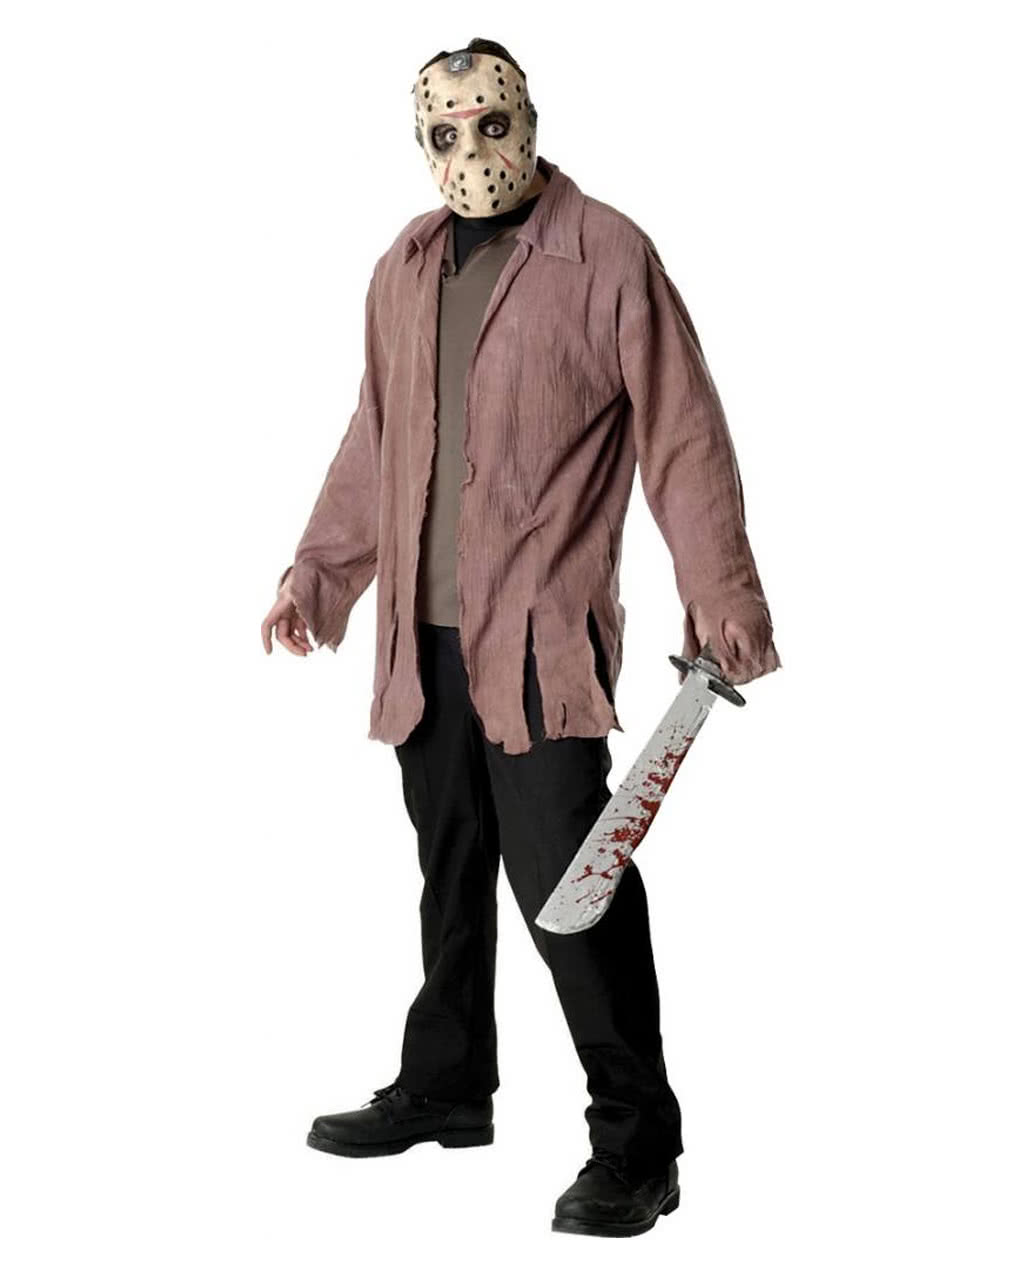 jason voorhees mask and ragged shirt | horror-shop